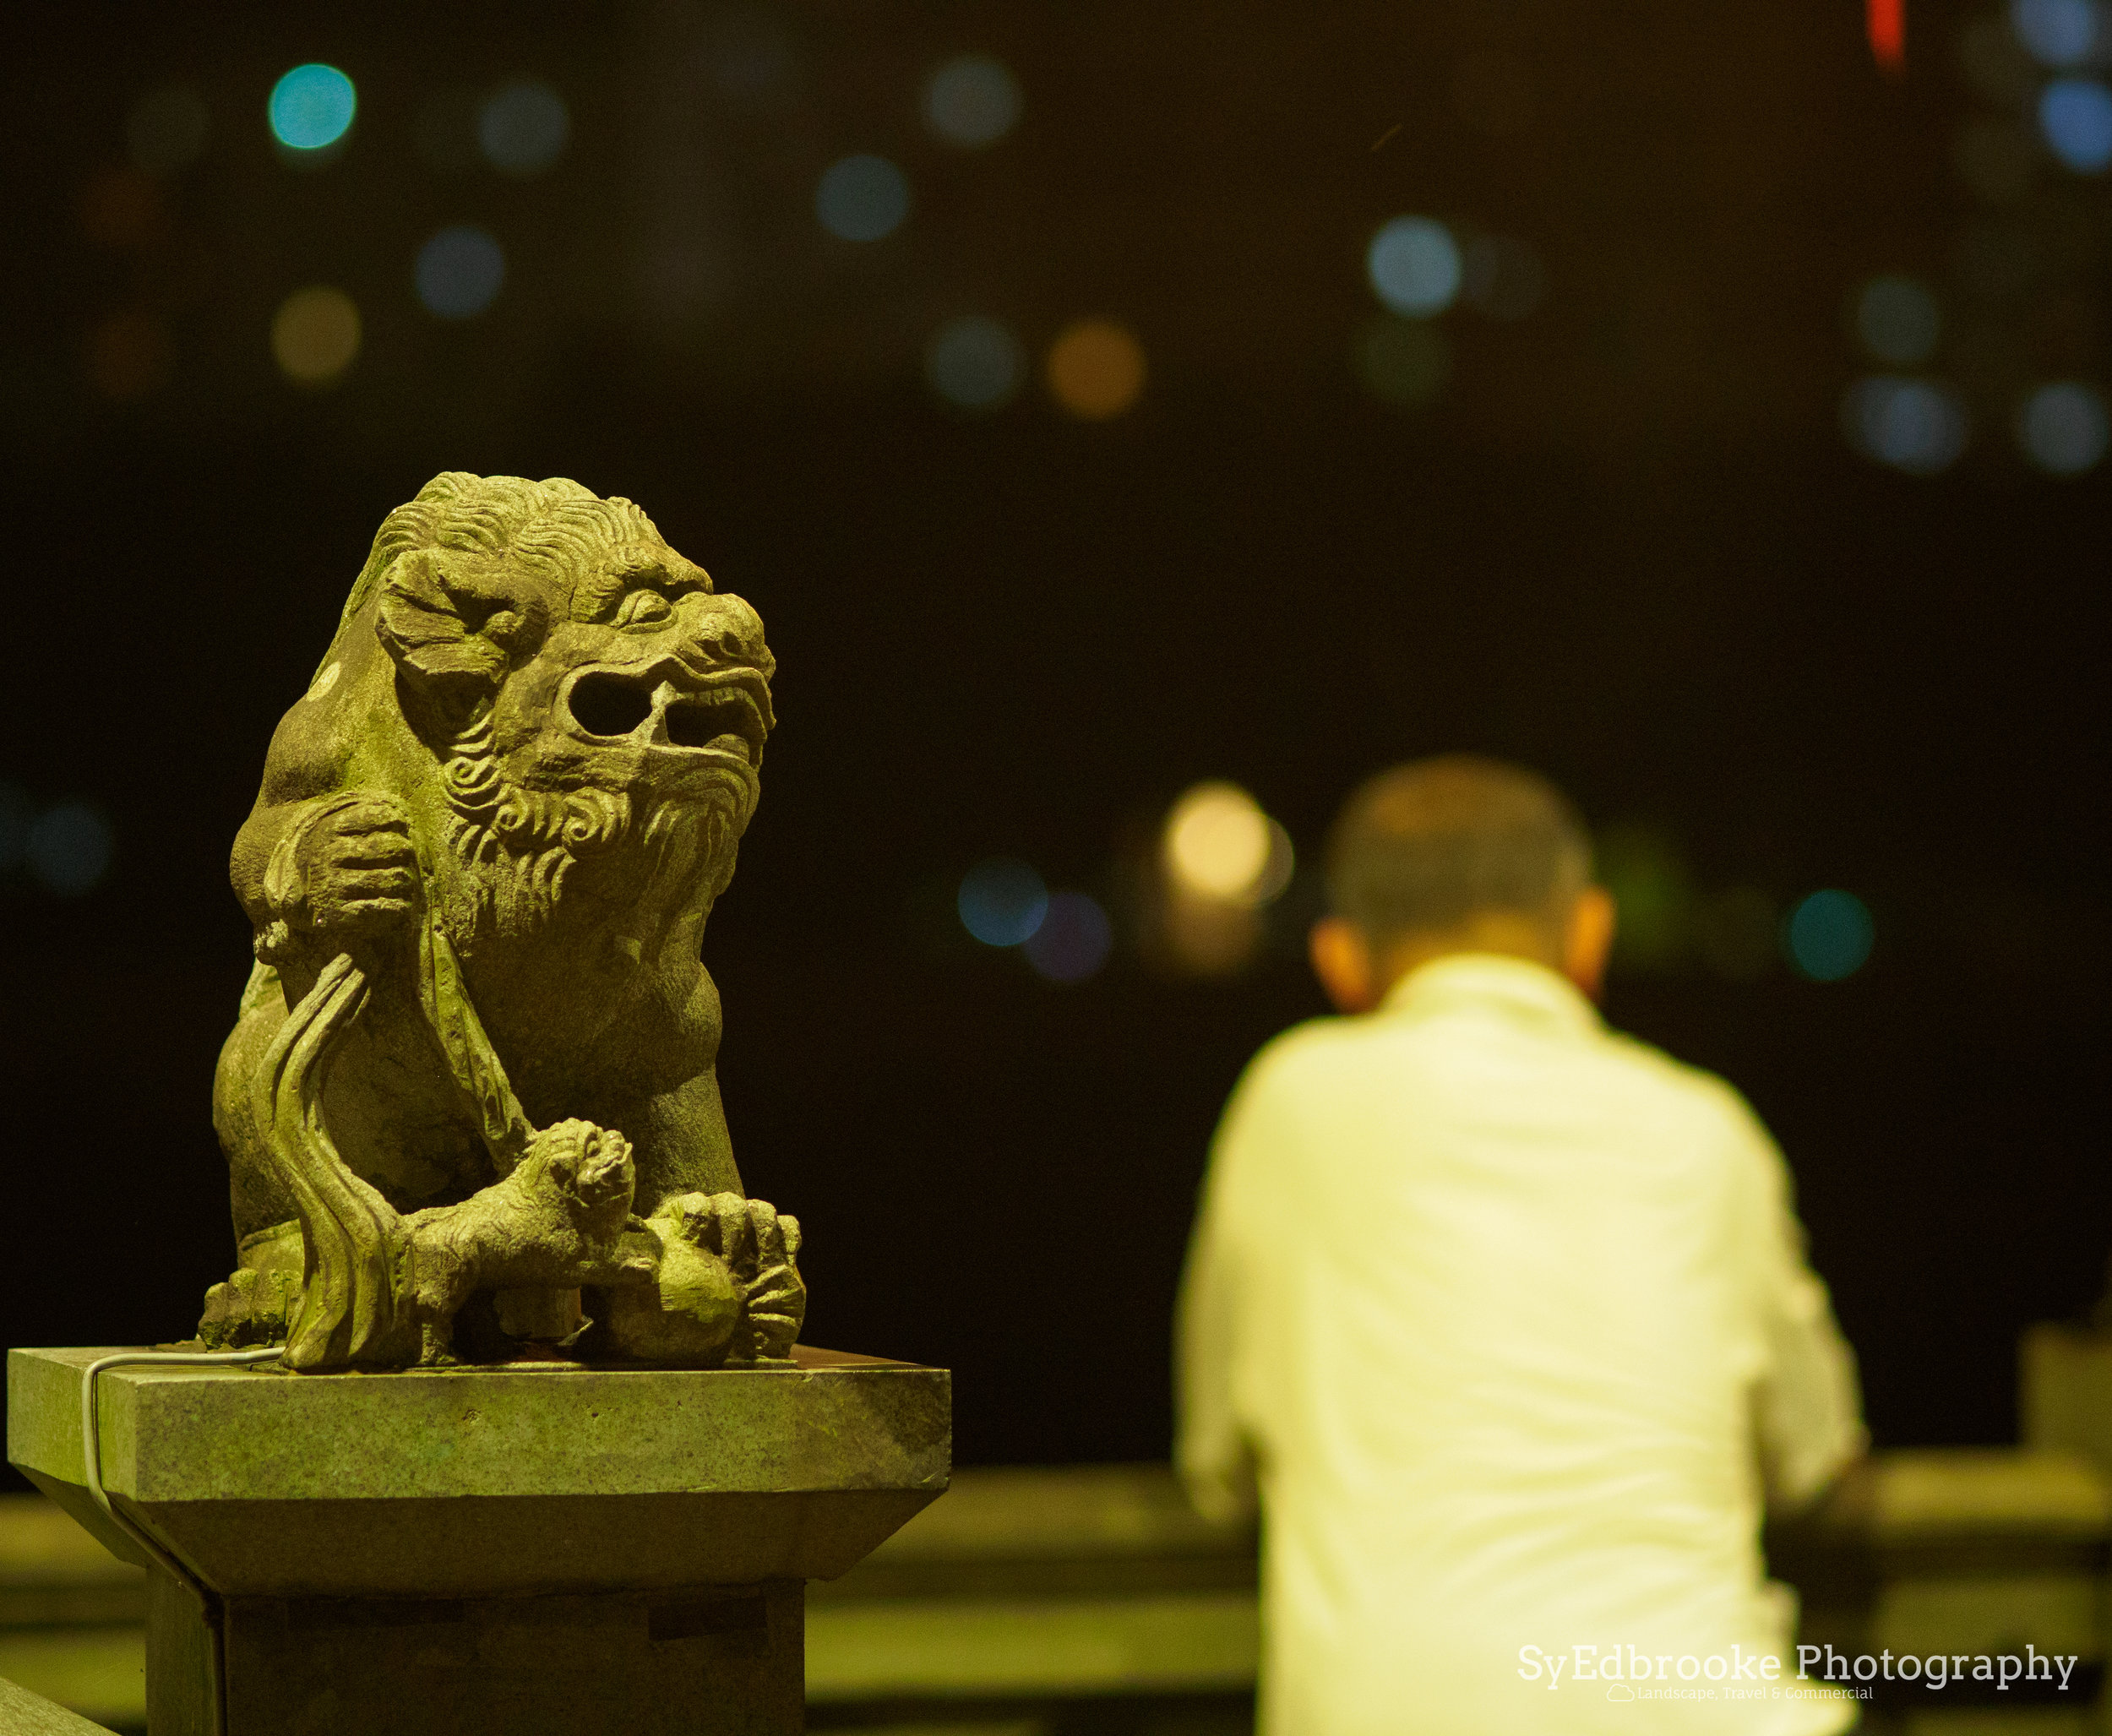 A local relaxing on a hot summer night. f1.8, ISO 1600, 1/30, 17mm